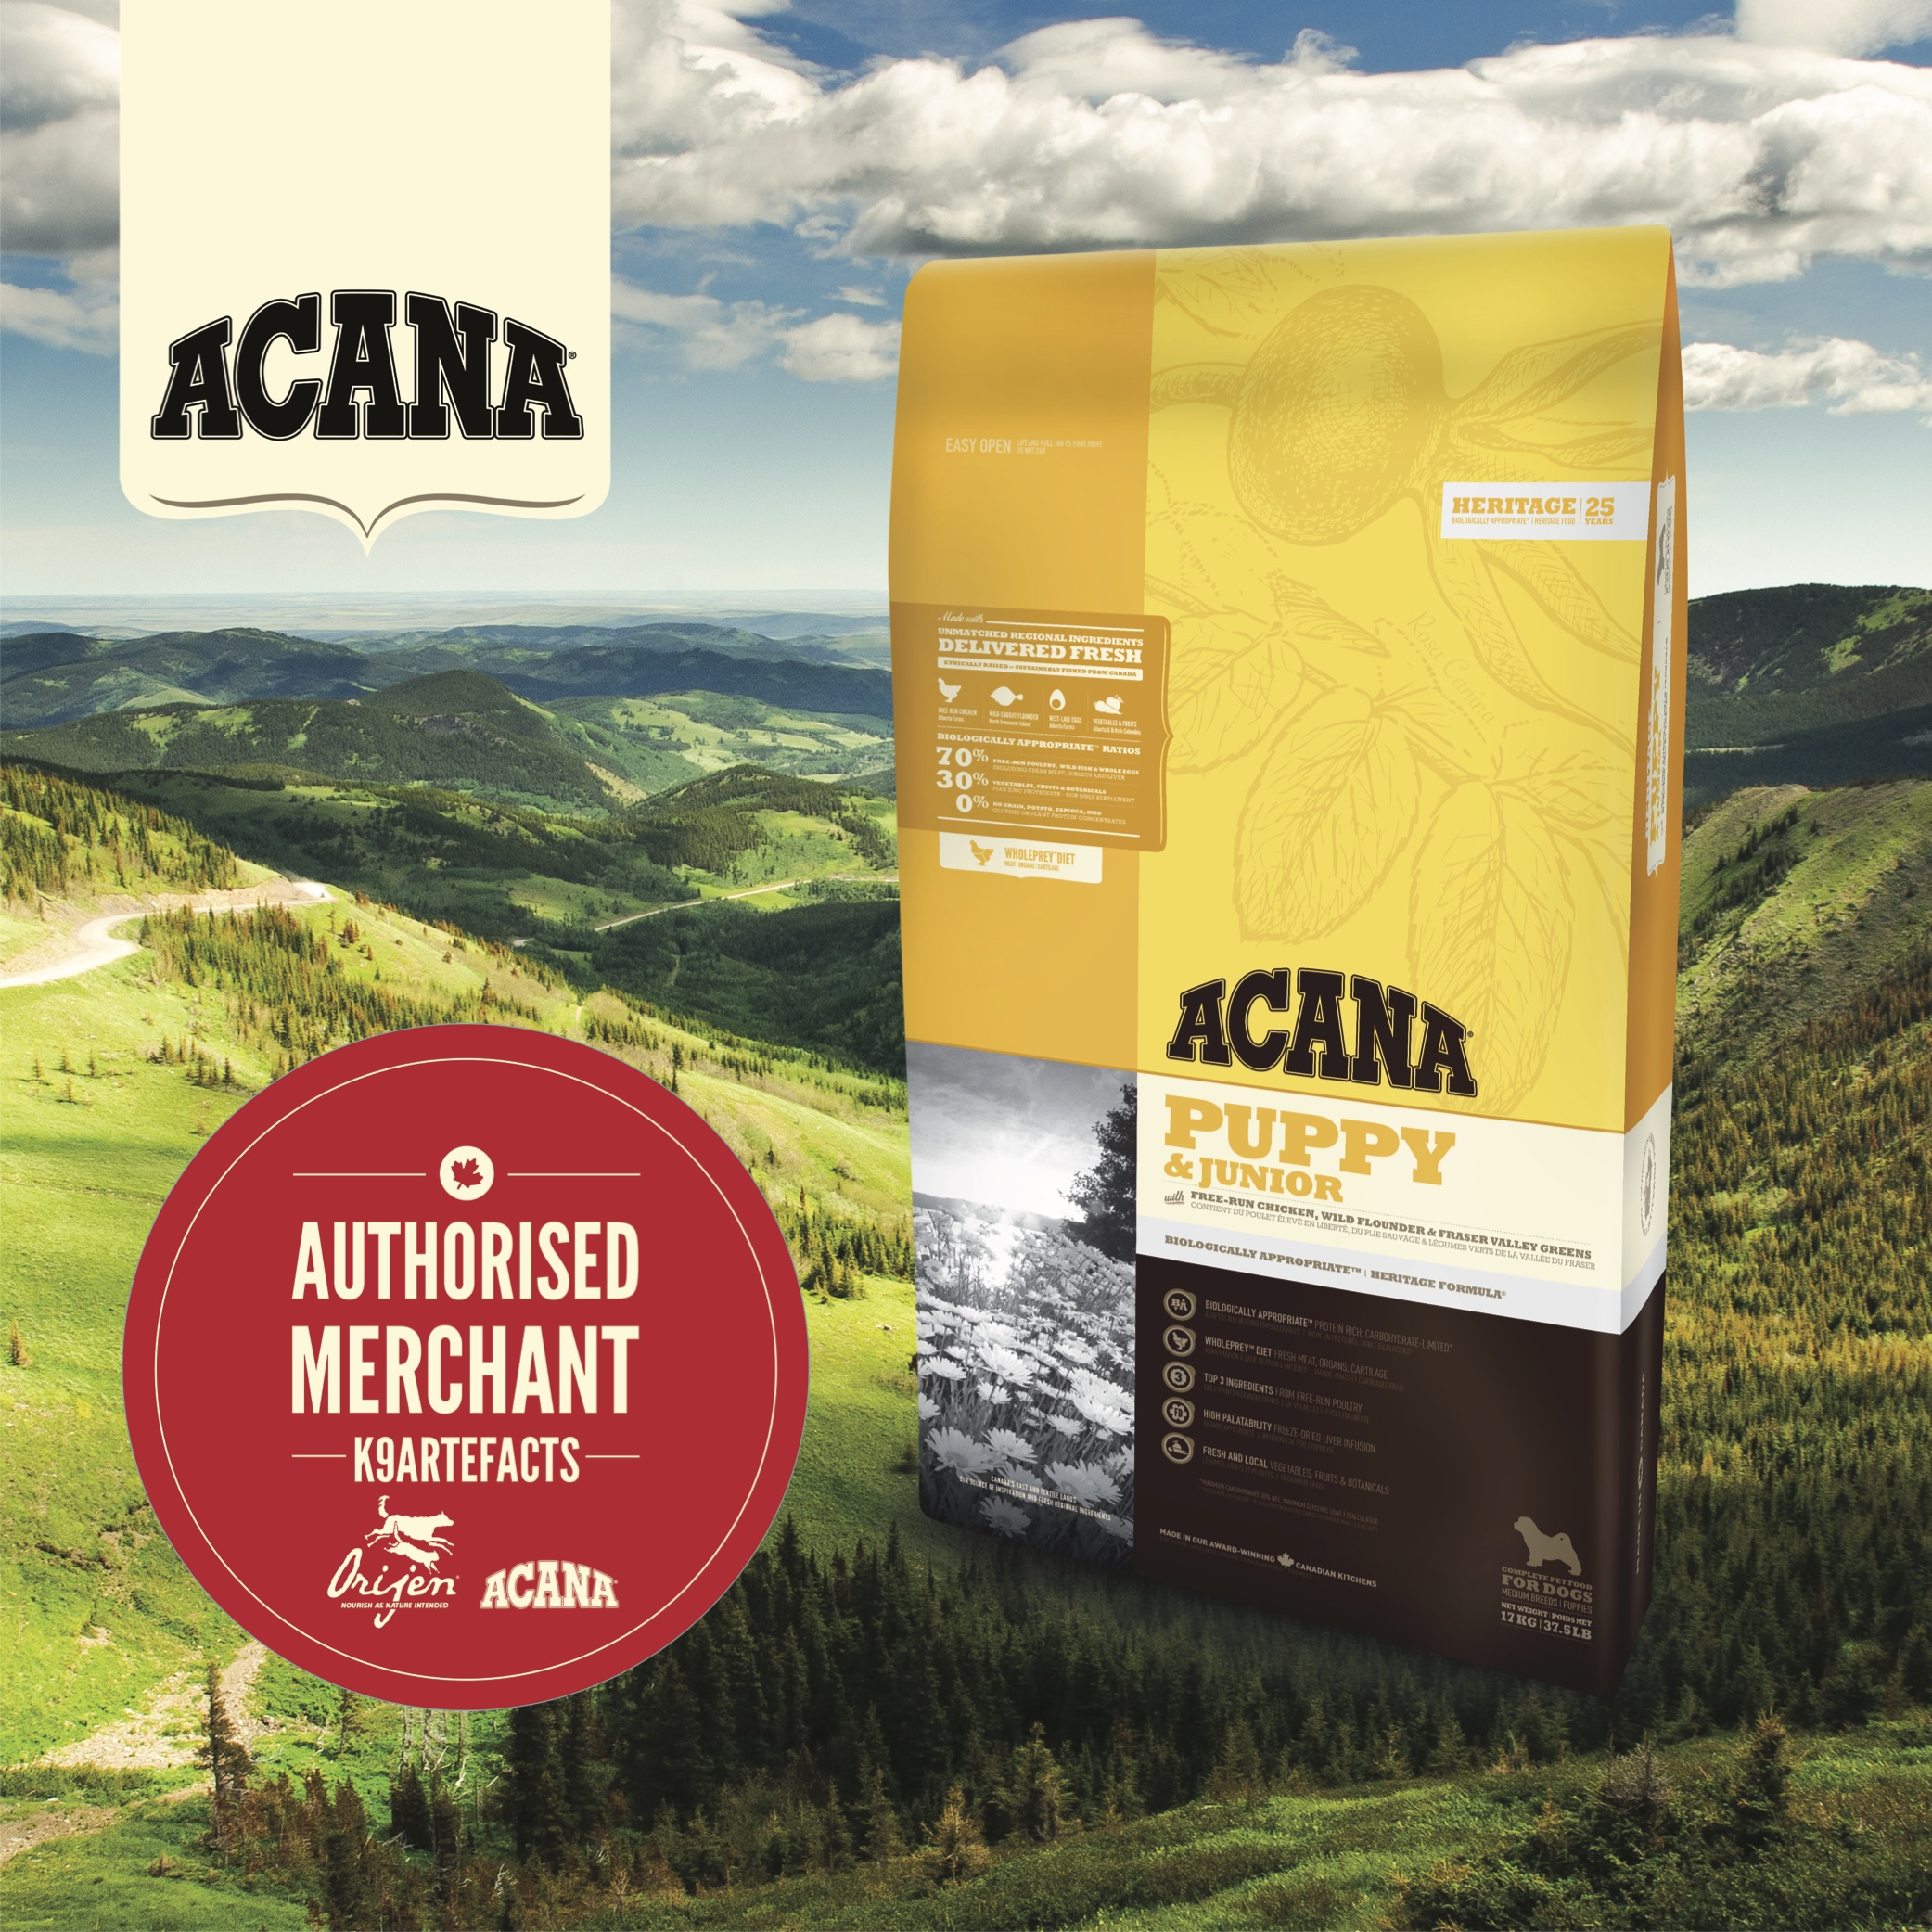 ACANA Puppy & Junior Dog Dry Formula 11.4kg